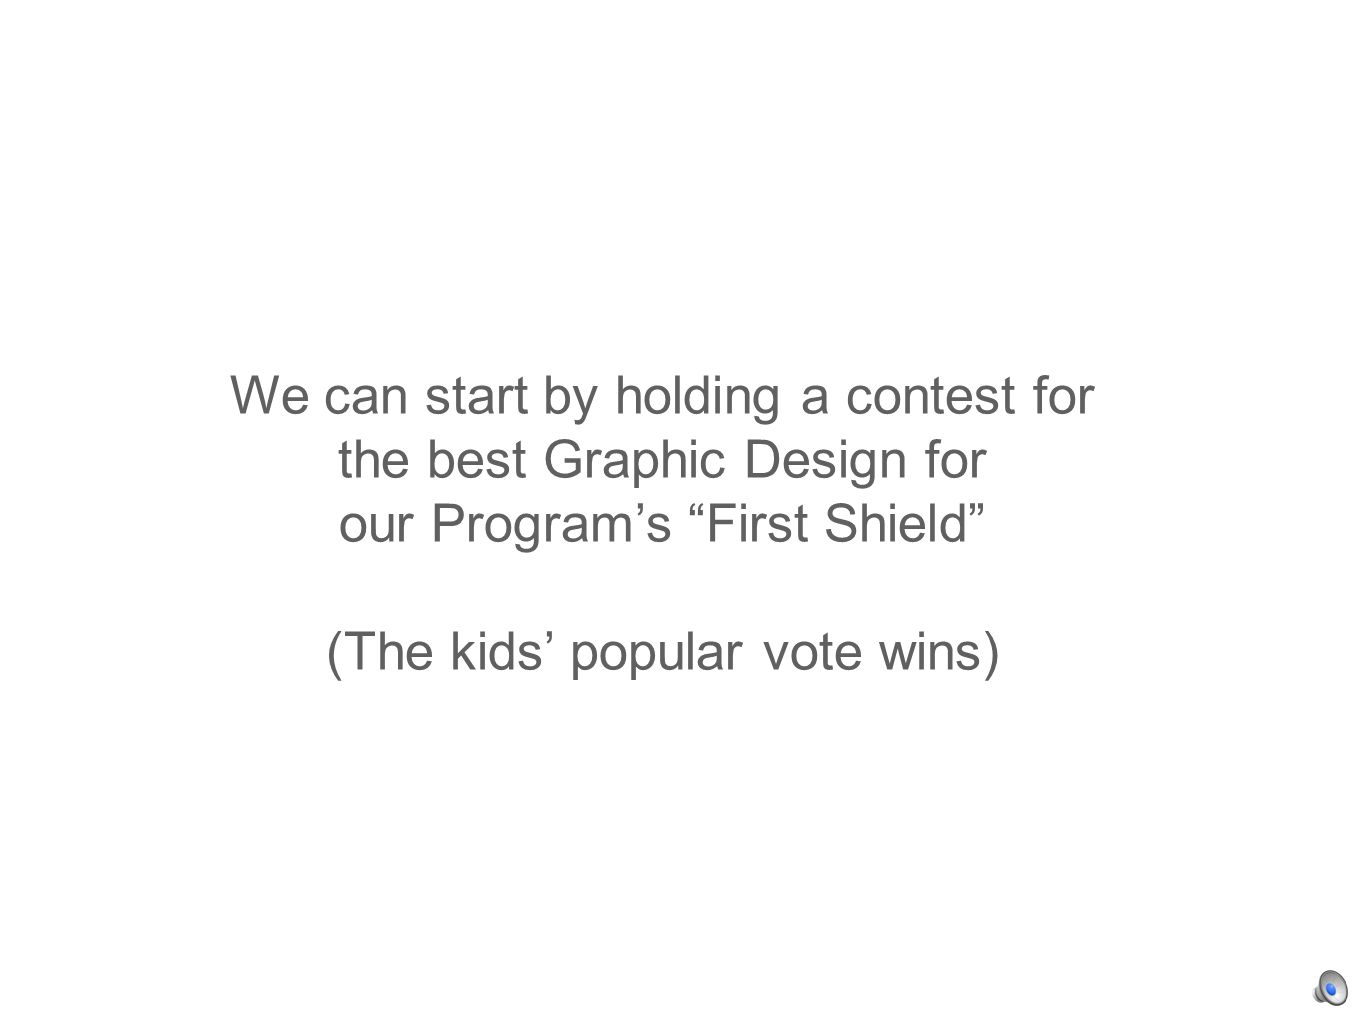 We can start by holding a contest for the best Graphic Design for our Programs First Shield (The kids popular vote wins)